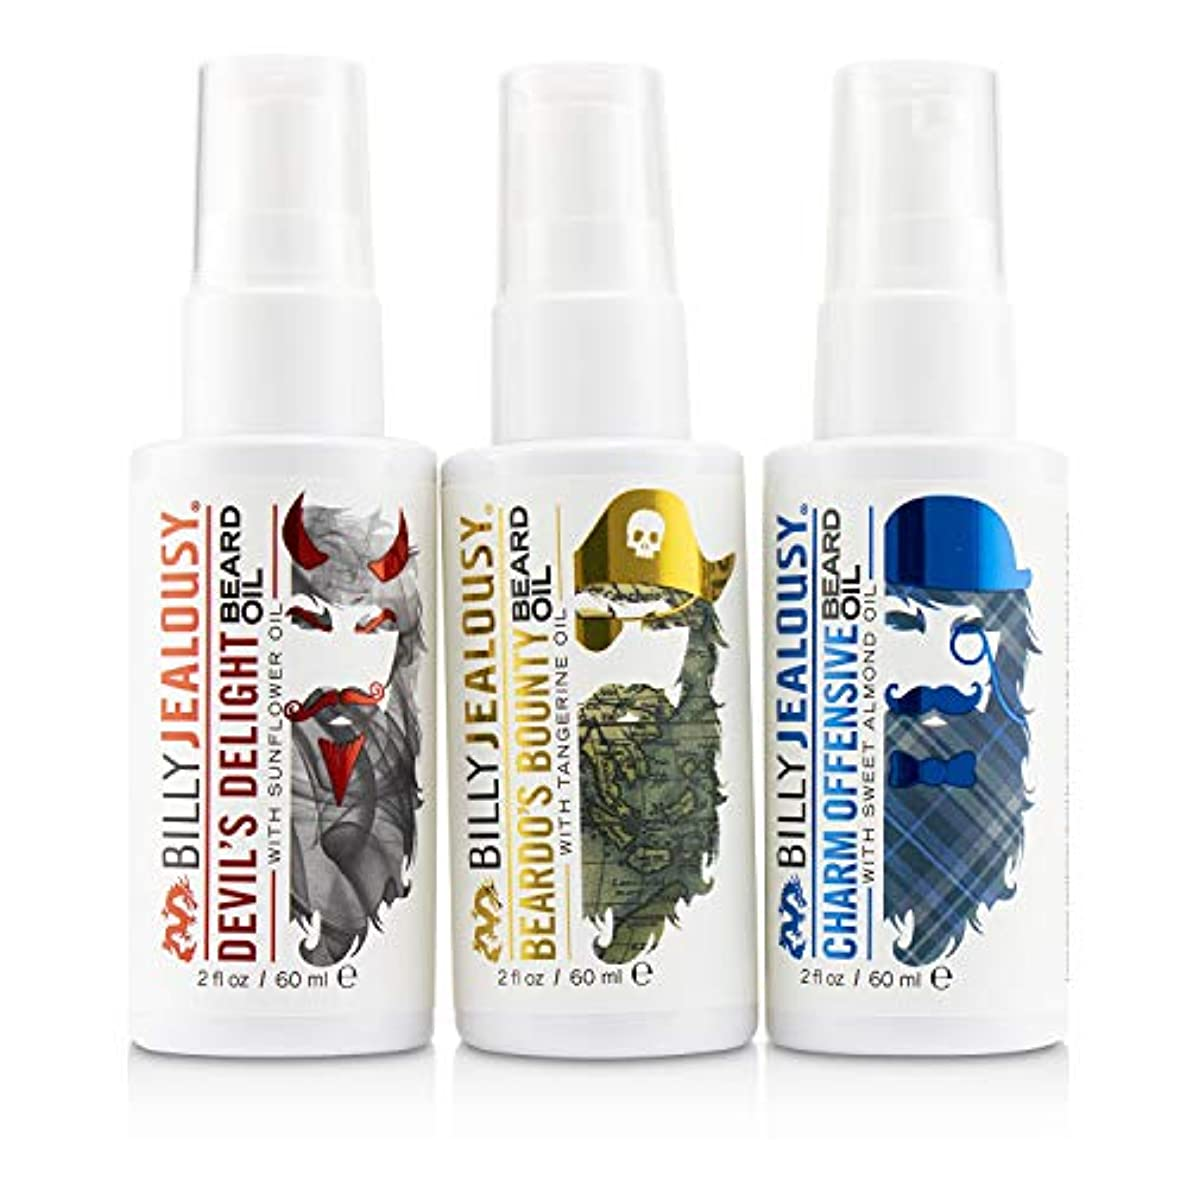 妖精審判電子レンジビリージェラシー 3 Amigos Beard Oil Trio Set : 1x Beardo's Bounty 60ml + 1x Devil's Delight 60ml + Charm Offensive 3pcs...